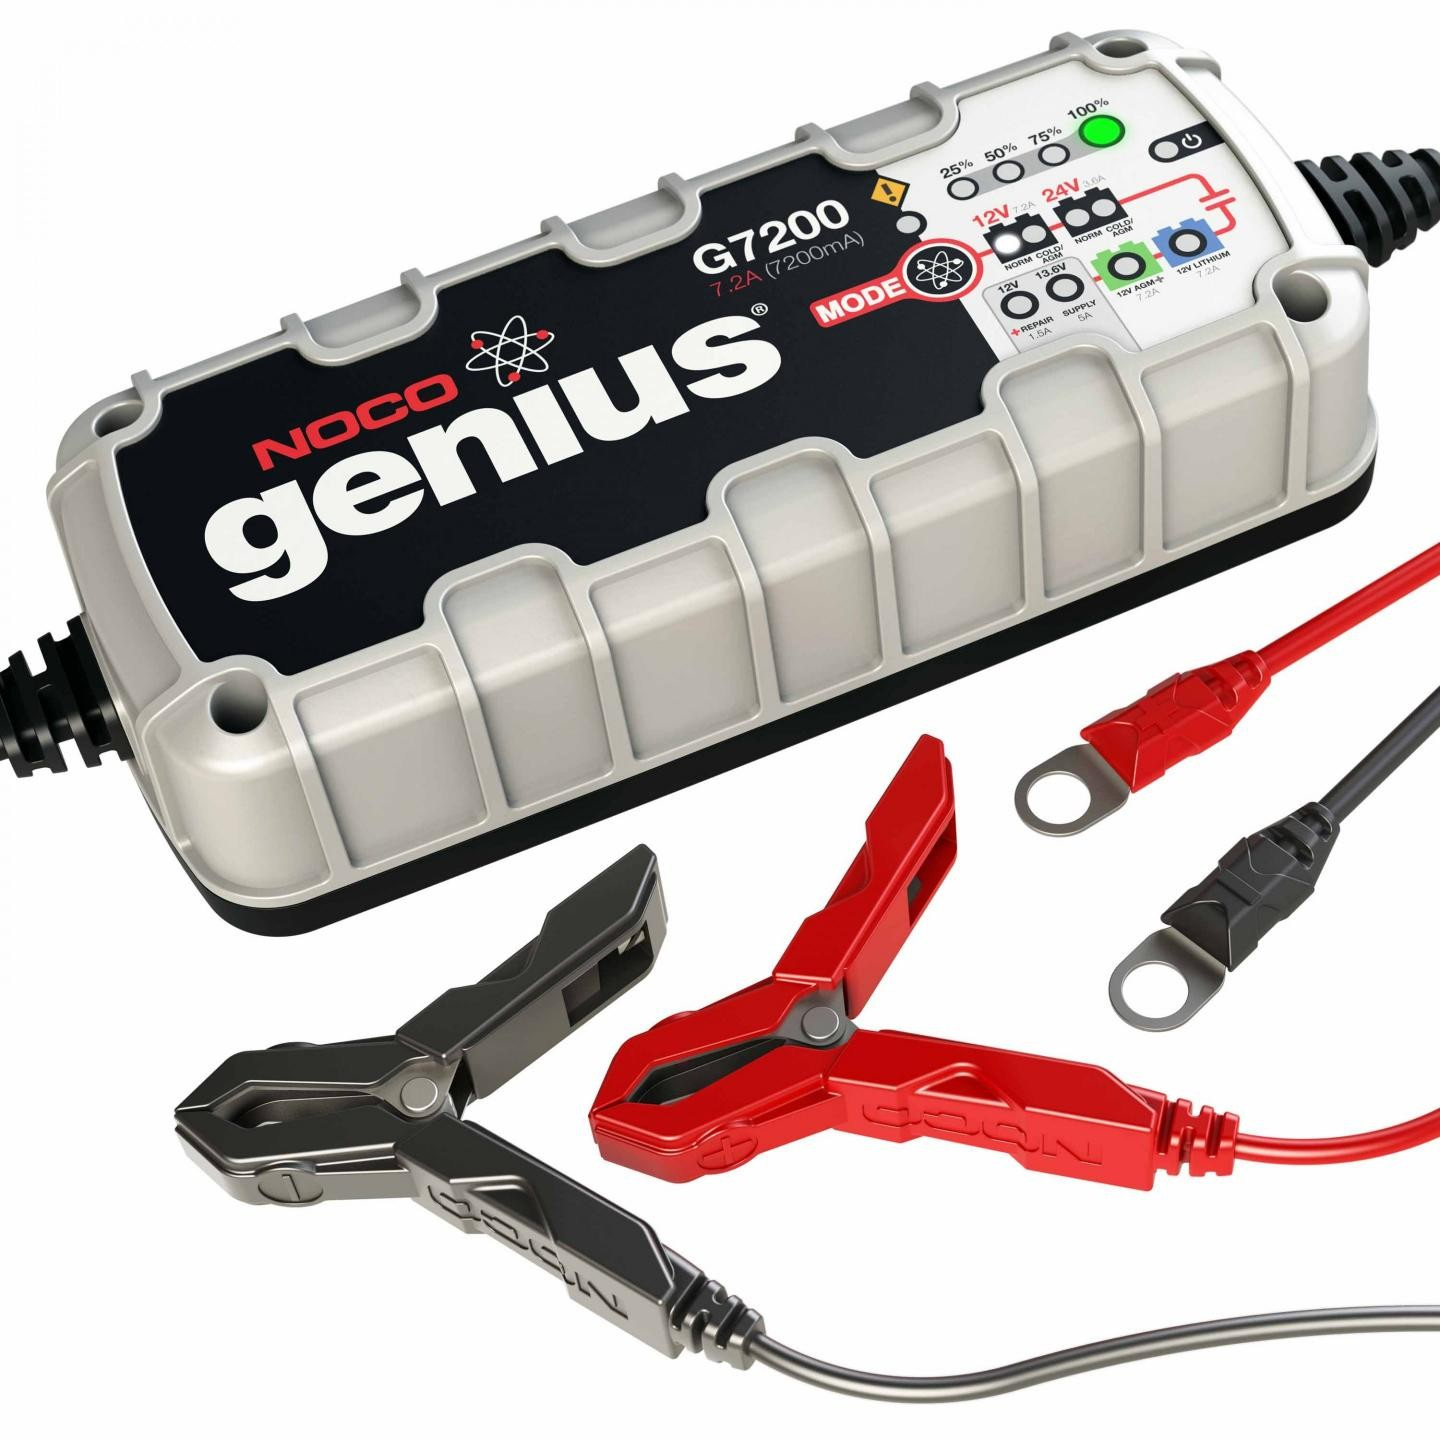 Noco 72a Battery Charger And Maintainer G7200 Lightweight 12v Circuit Diagram With Auto Cut Off 24v Ultrasafe